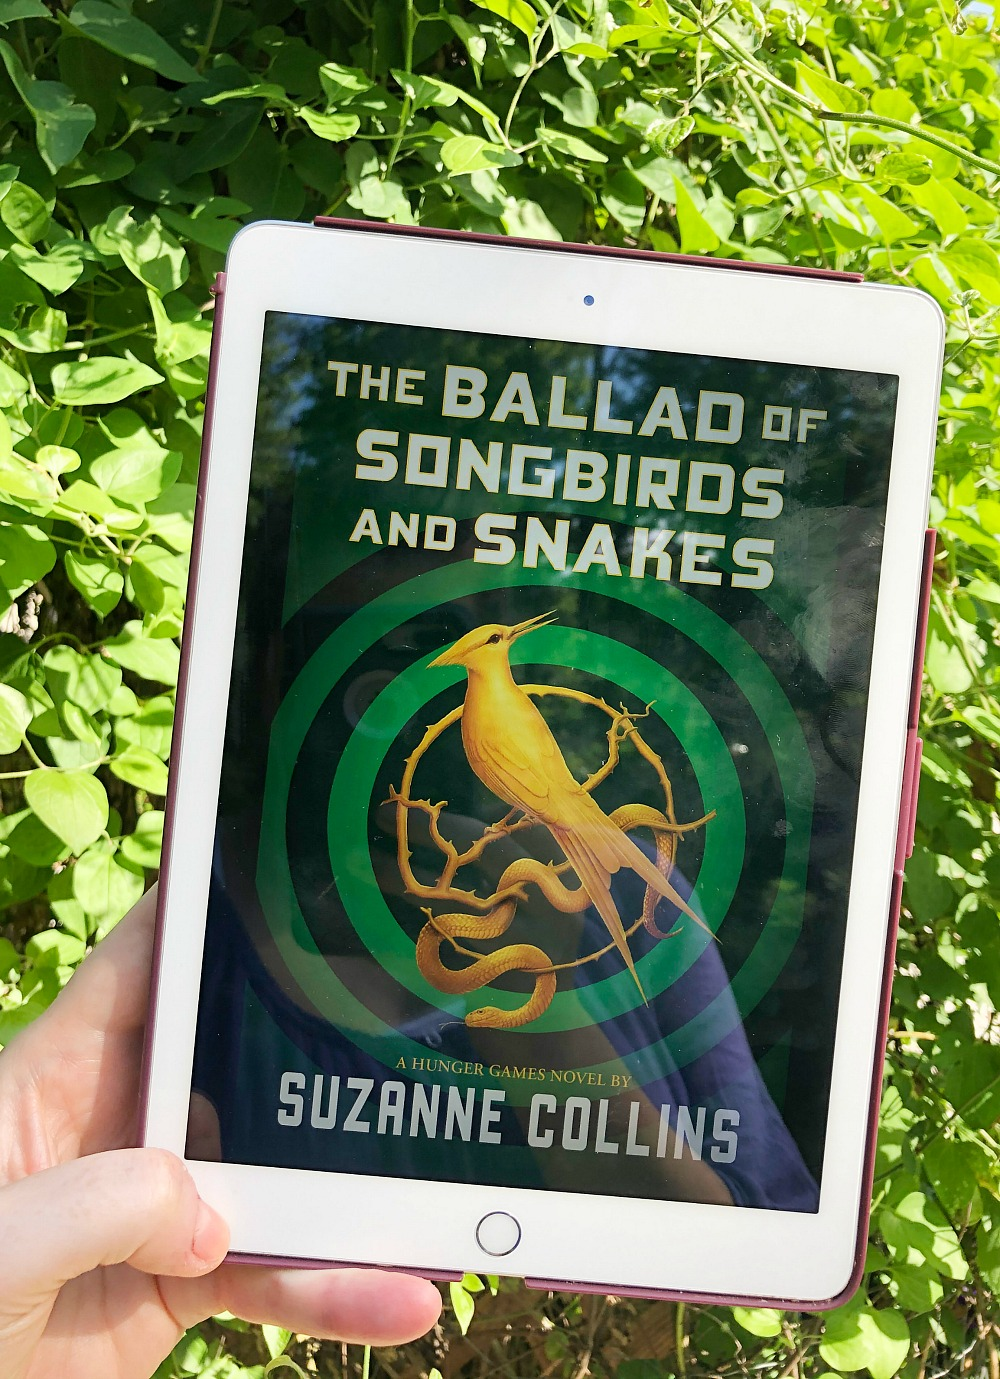 2020 Summer Reading List I The Ballad of Songbirds and Snakes by Suzanne Collins